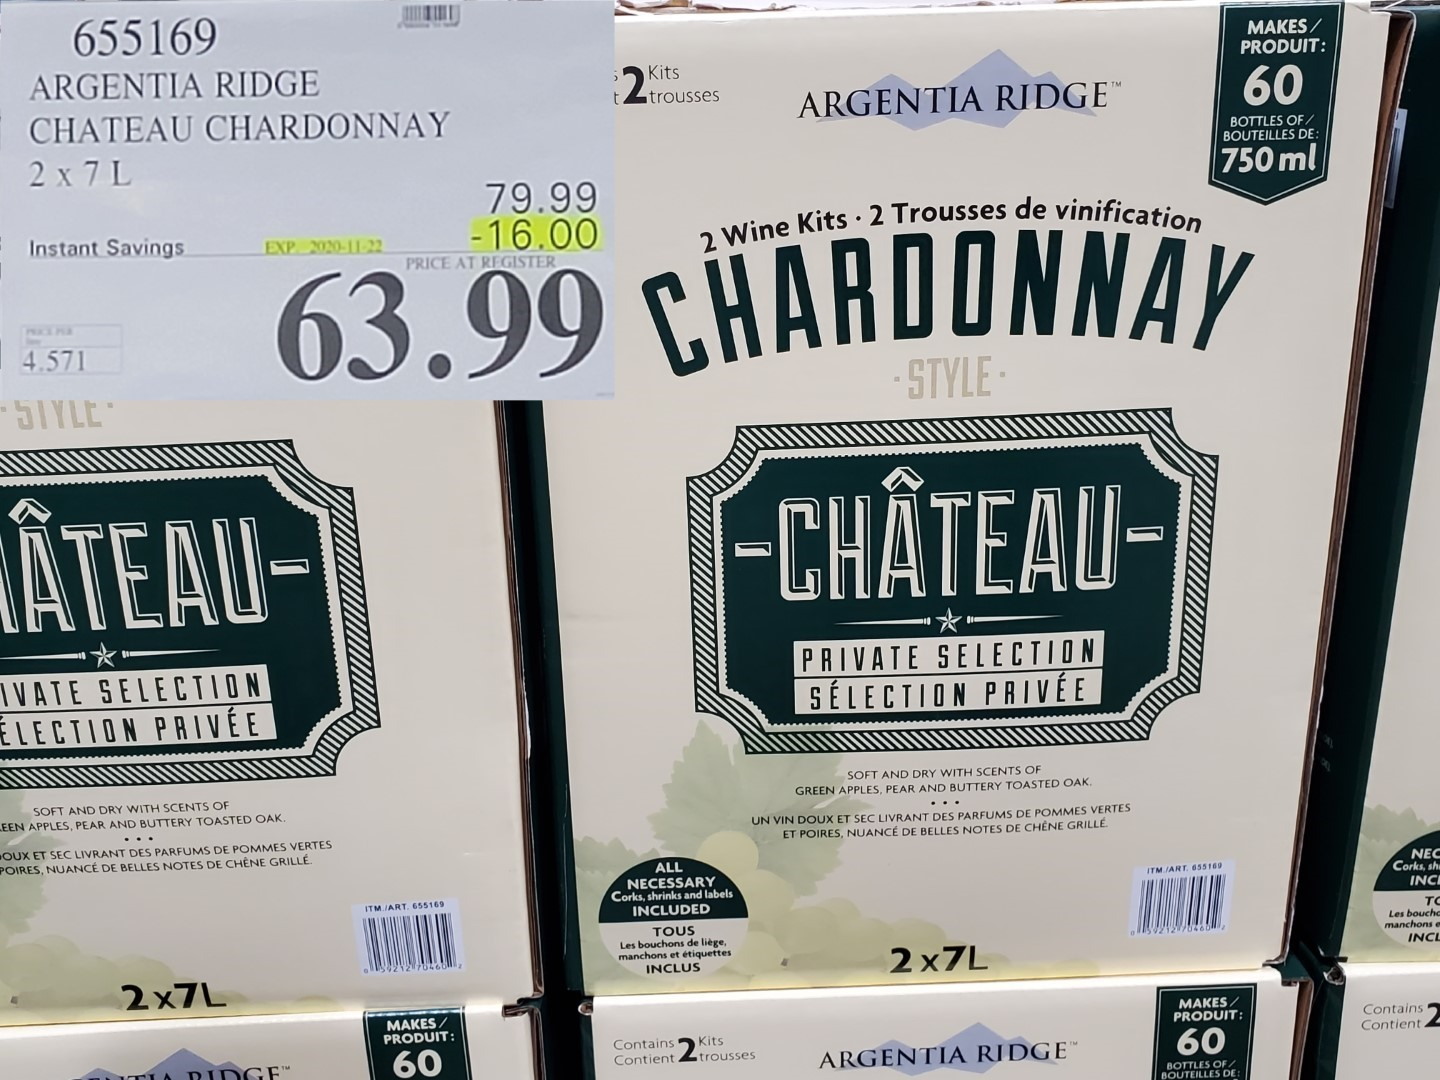 chateau chardonnay wine kit